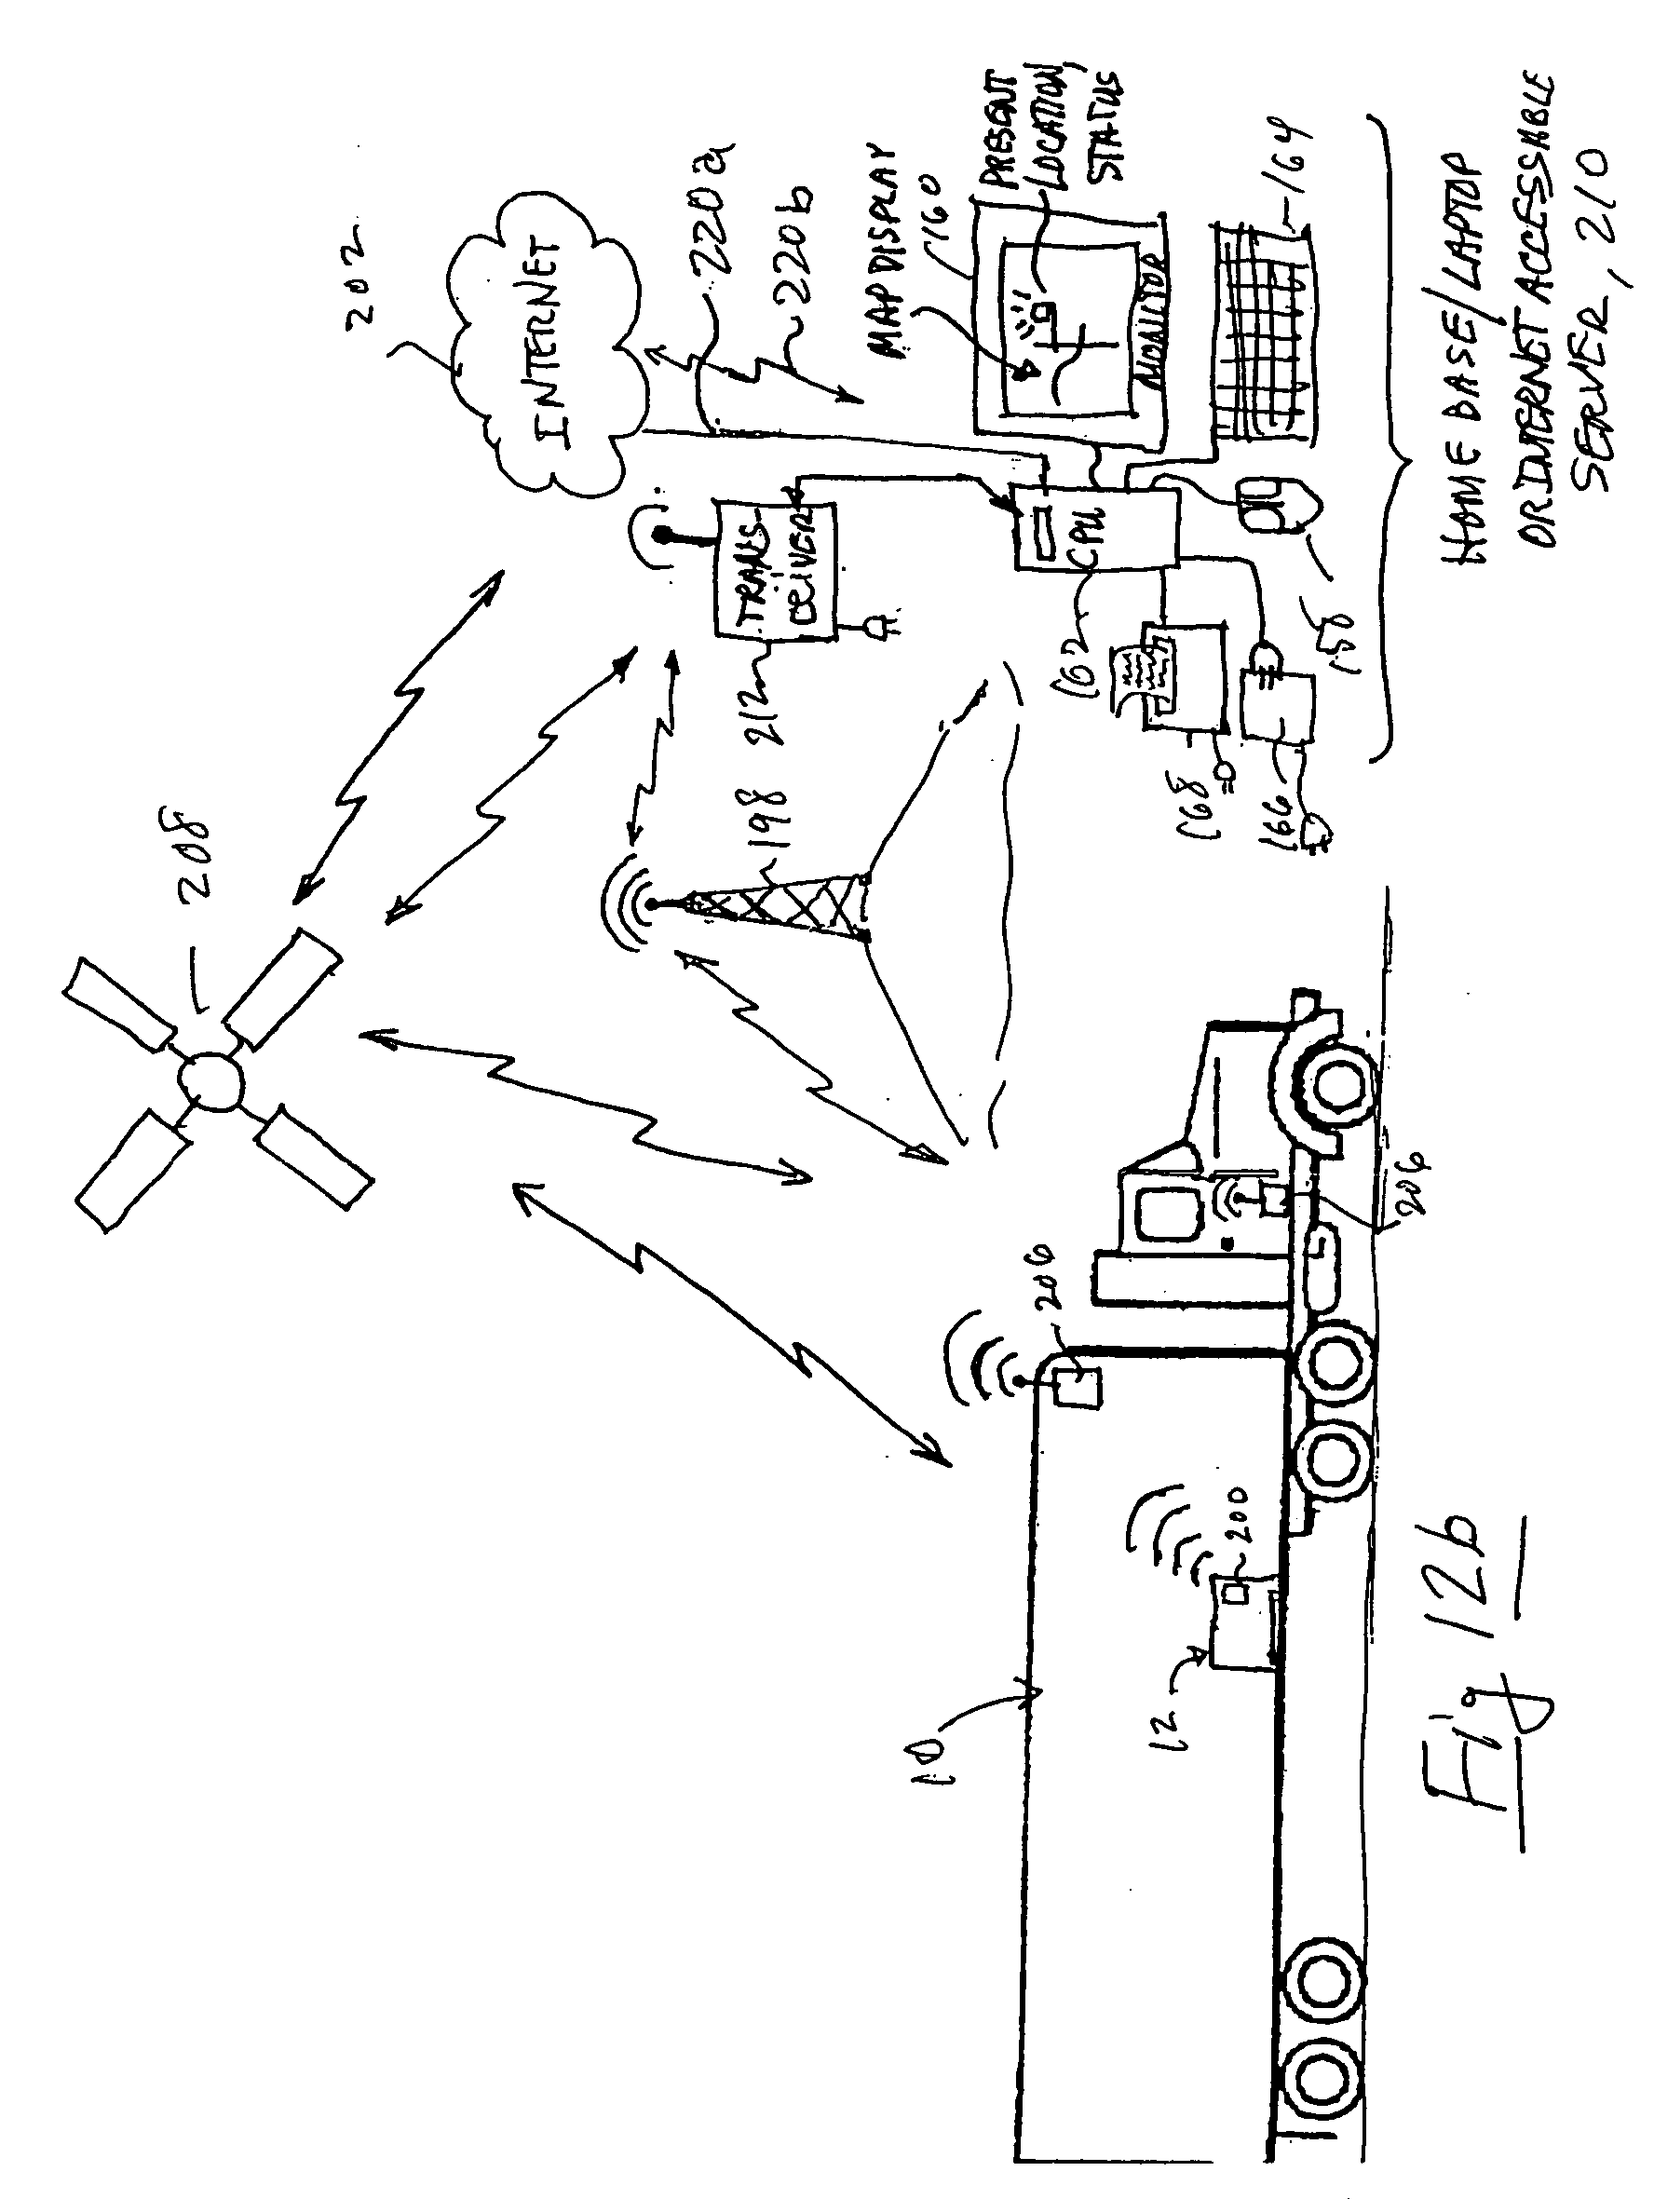 likewise trailer pallet loading diagram on cargo container diagram Electric Pallet Jack Parts patent us20050232747 smart pallet box cargo container